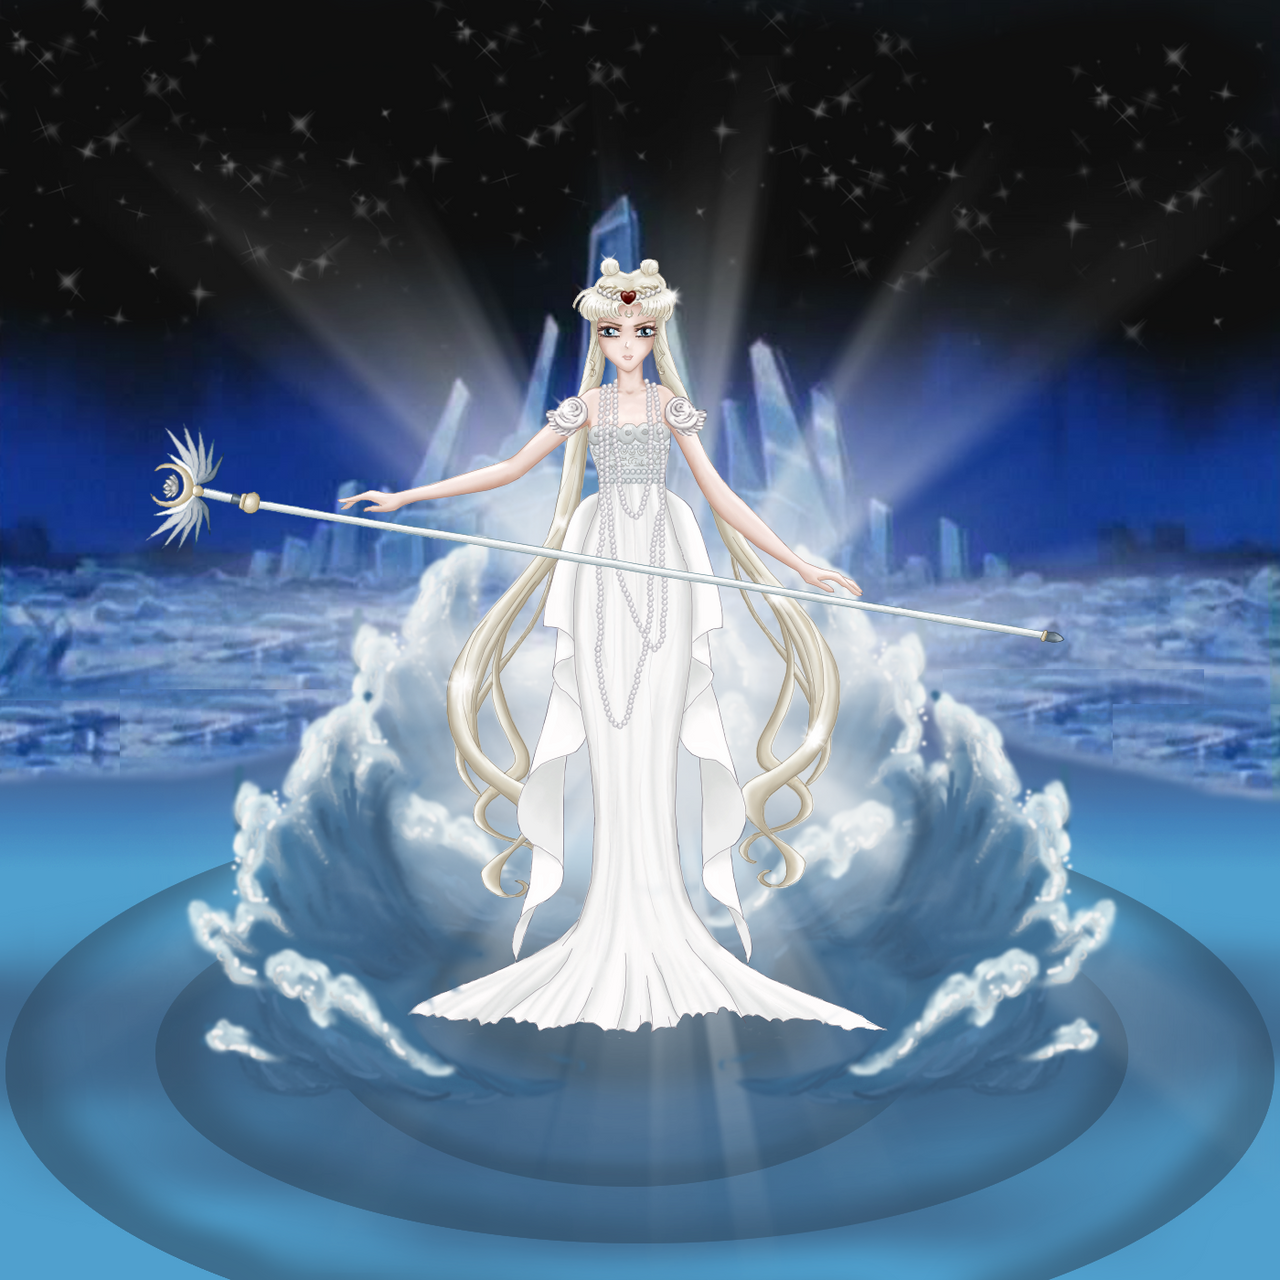 Neo Queen Serenity Crystal: Neo Queen Serenity By Alphaniah On DeviantArt